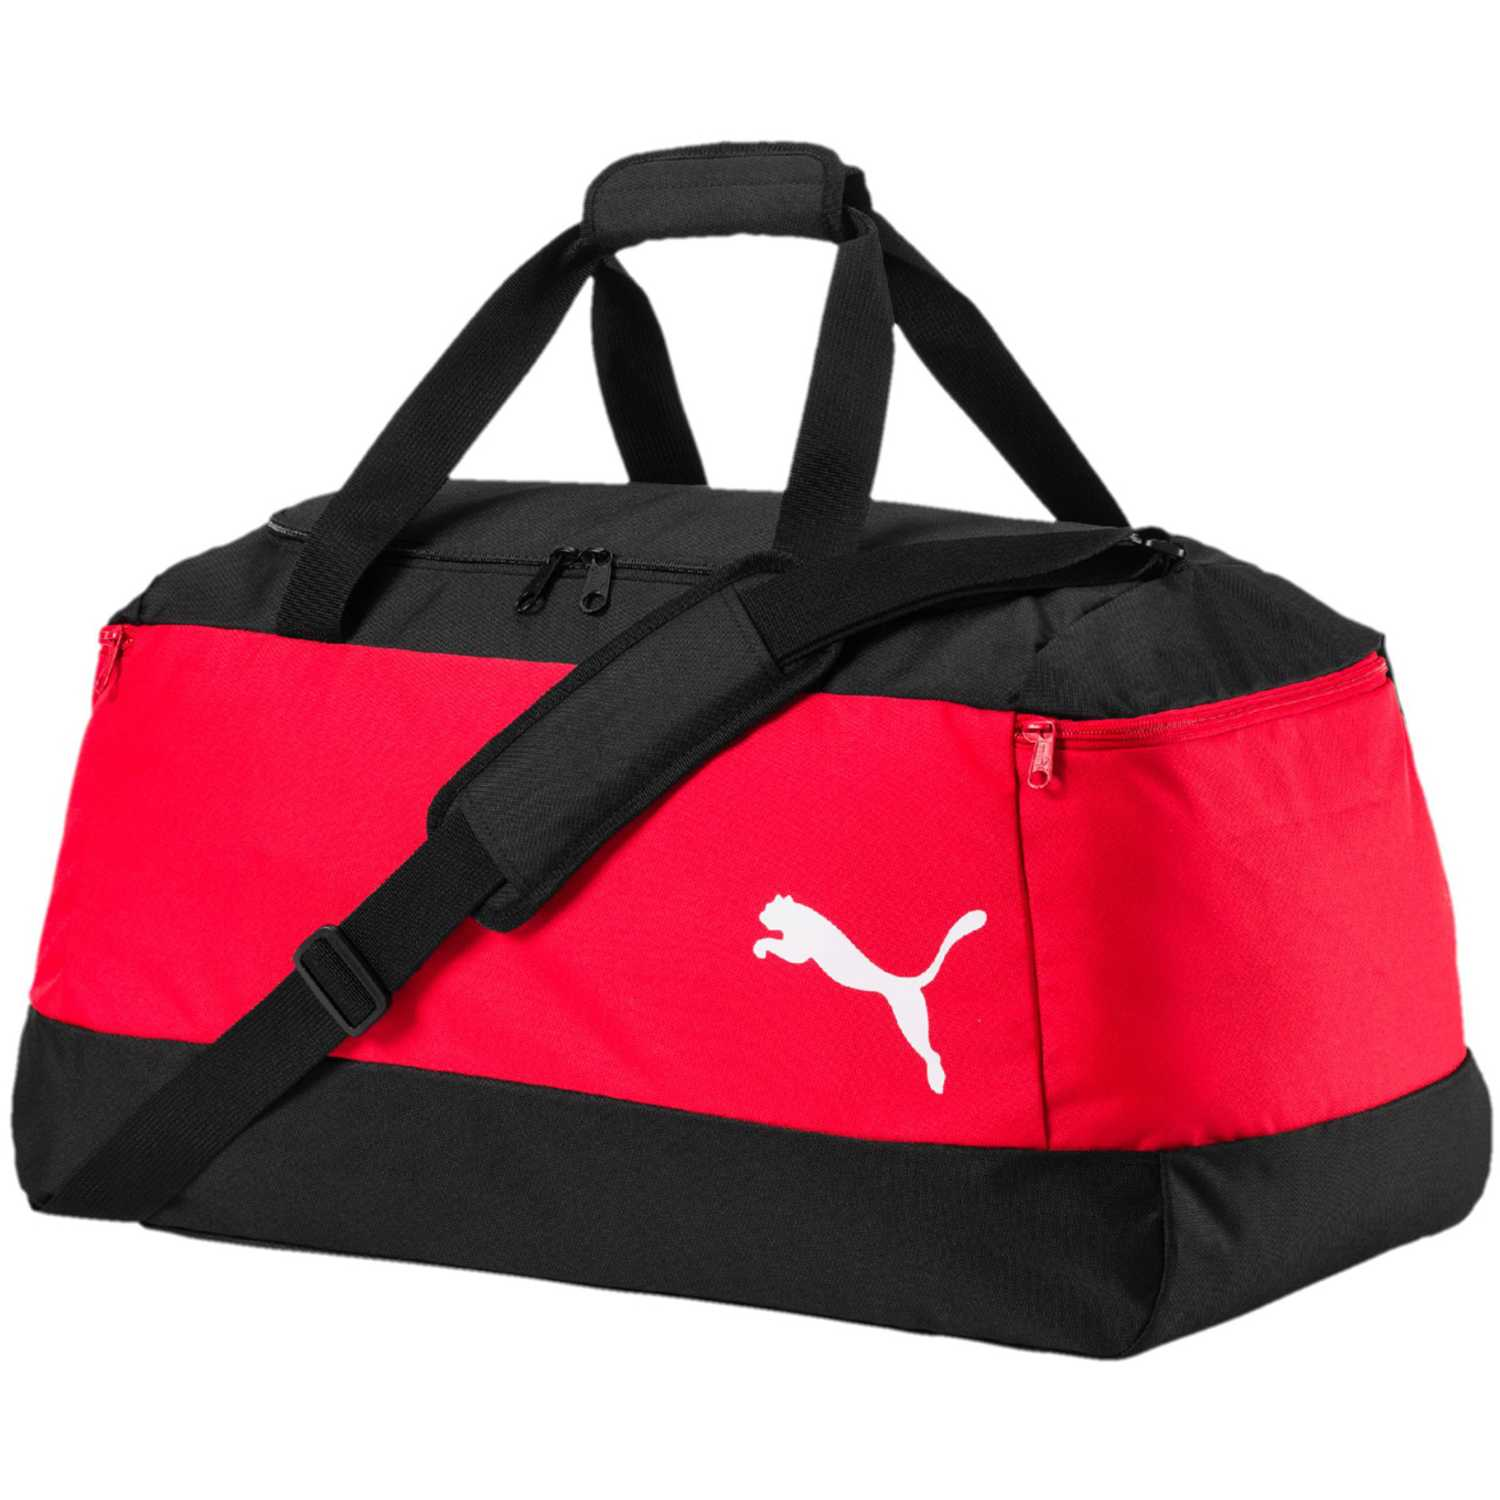 Puma pro training ii medium bag Rojo / negro Bolsos de gimnasio